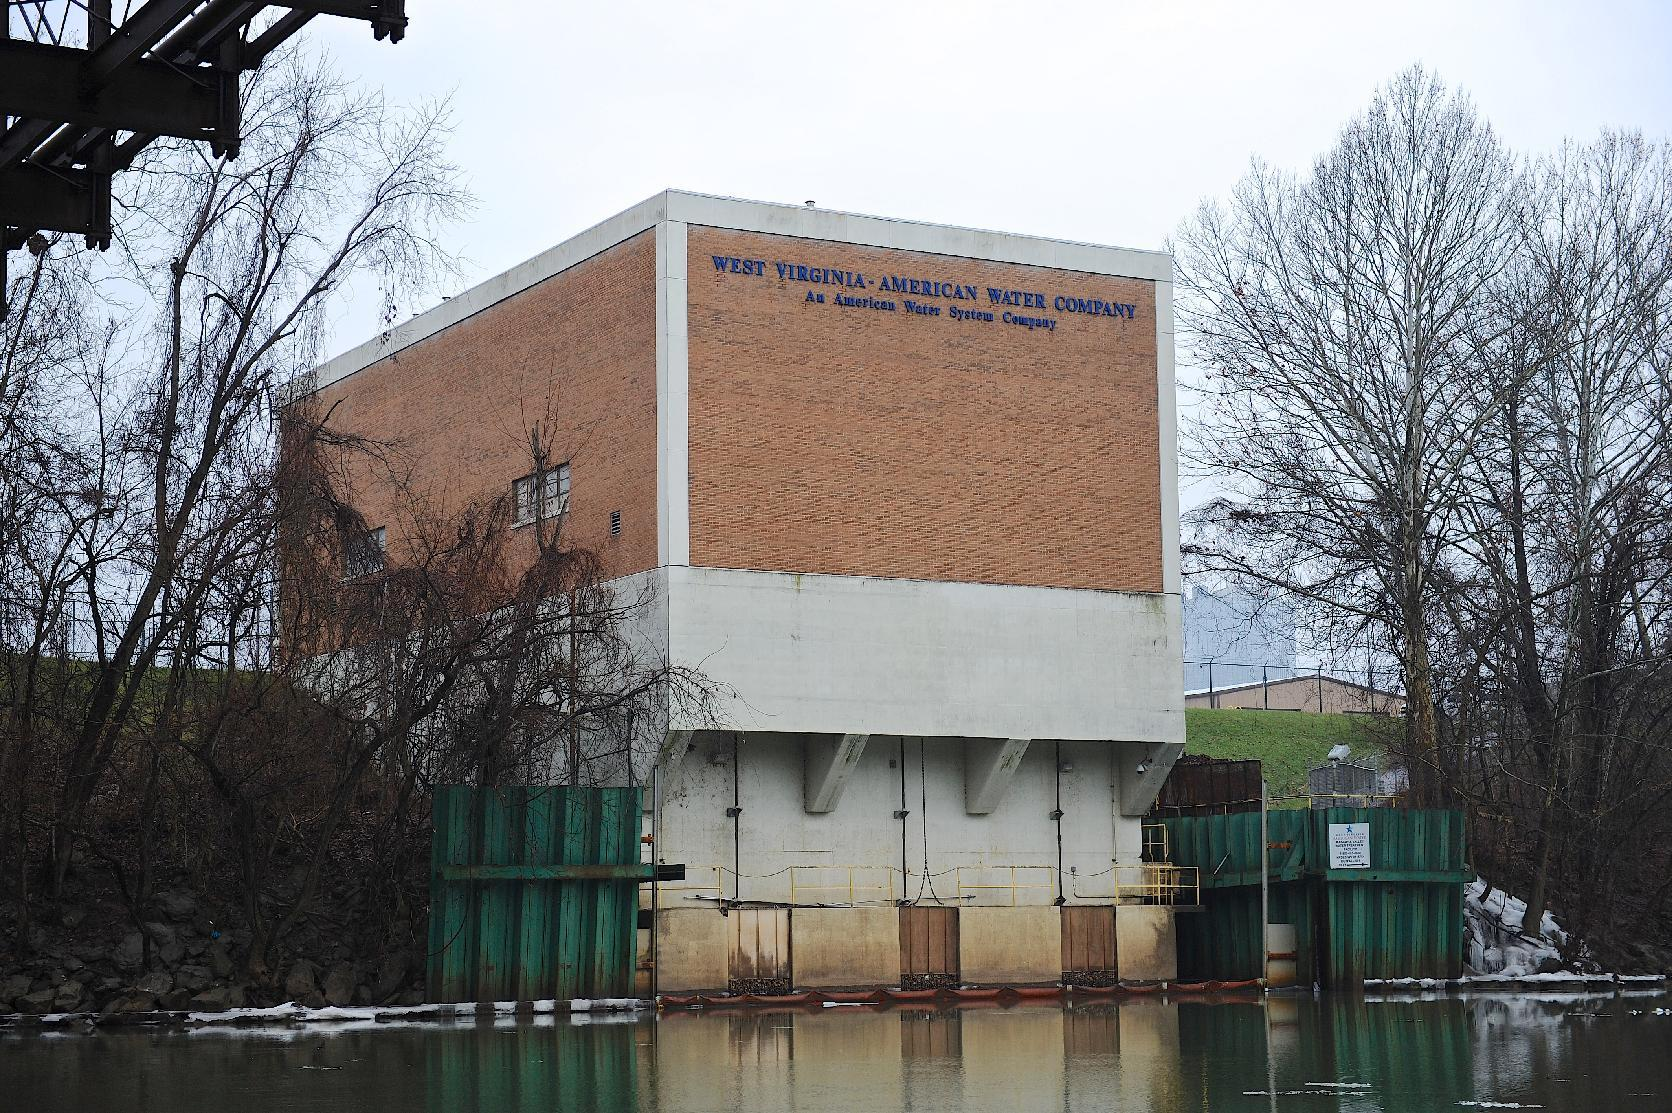 The West Virginia American Water Co. intake facility on the Elk River is closed following a 4-methylcyclohexane methanol leak from a 48,000-gallon tank at Freedom Industries, a chemical storage facility about a mile upriver in Charleston, W.Va., on Friday, Jan. 10, 2014. The White House has issued a federal disaster declaration in West Virginia, where a chemical spill that may have contaminated tap water has led officials to tell at least 300,000 people not to bathe, brush their teeth or wash their clothes. The West Virginia National Guard planned to distribute bottled drinking water to emergency services agencies in the nine affected counties. About 100,000 water customers, or 300,000 people total, were affected, state officials said. (AP Photo/Tyler Evert)